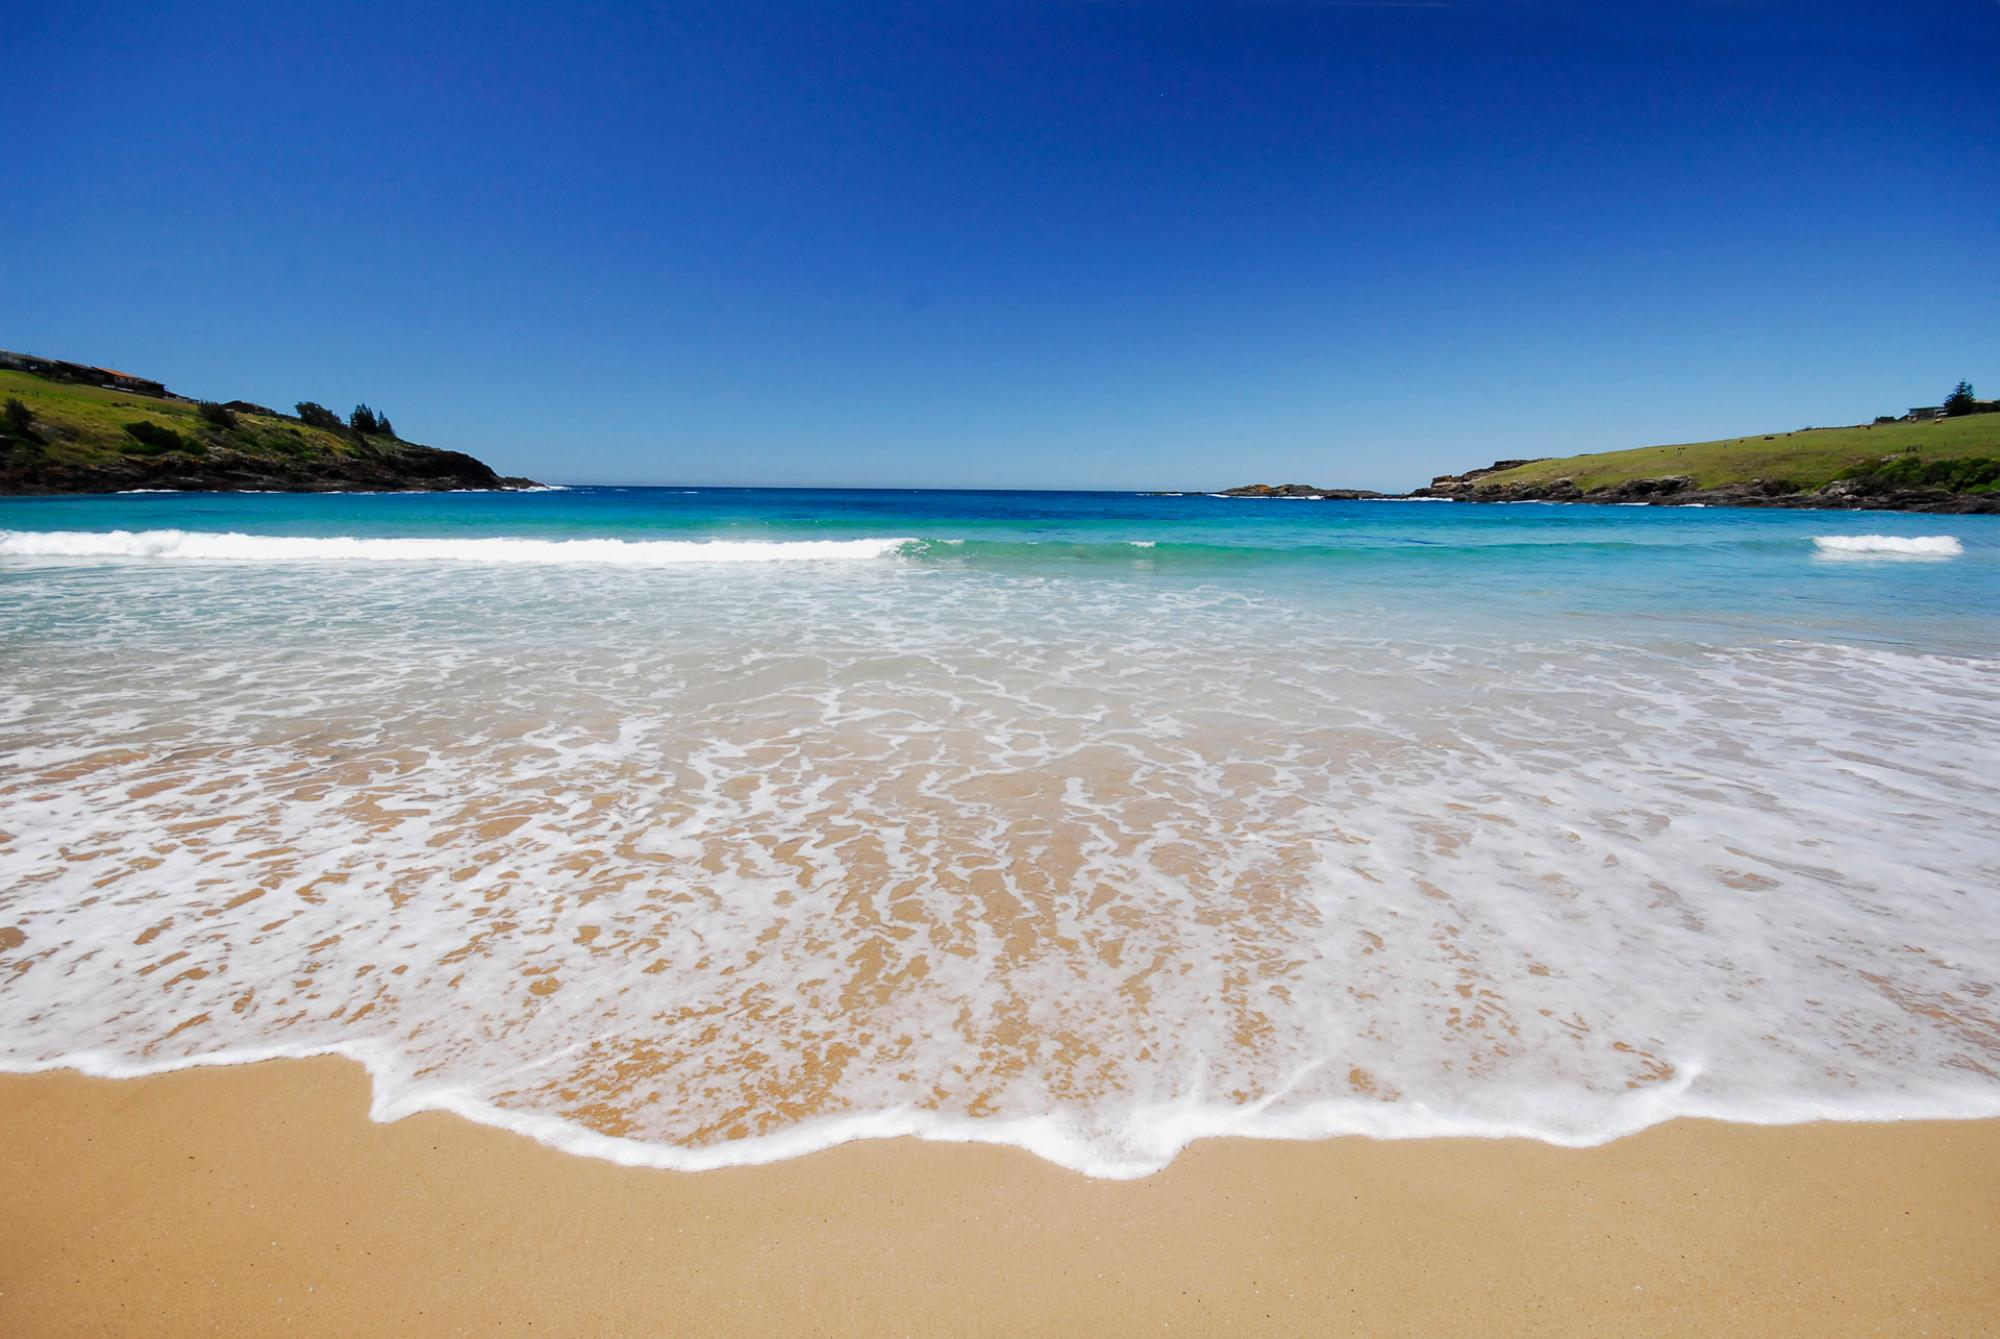 Sea Waves on a Beach